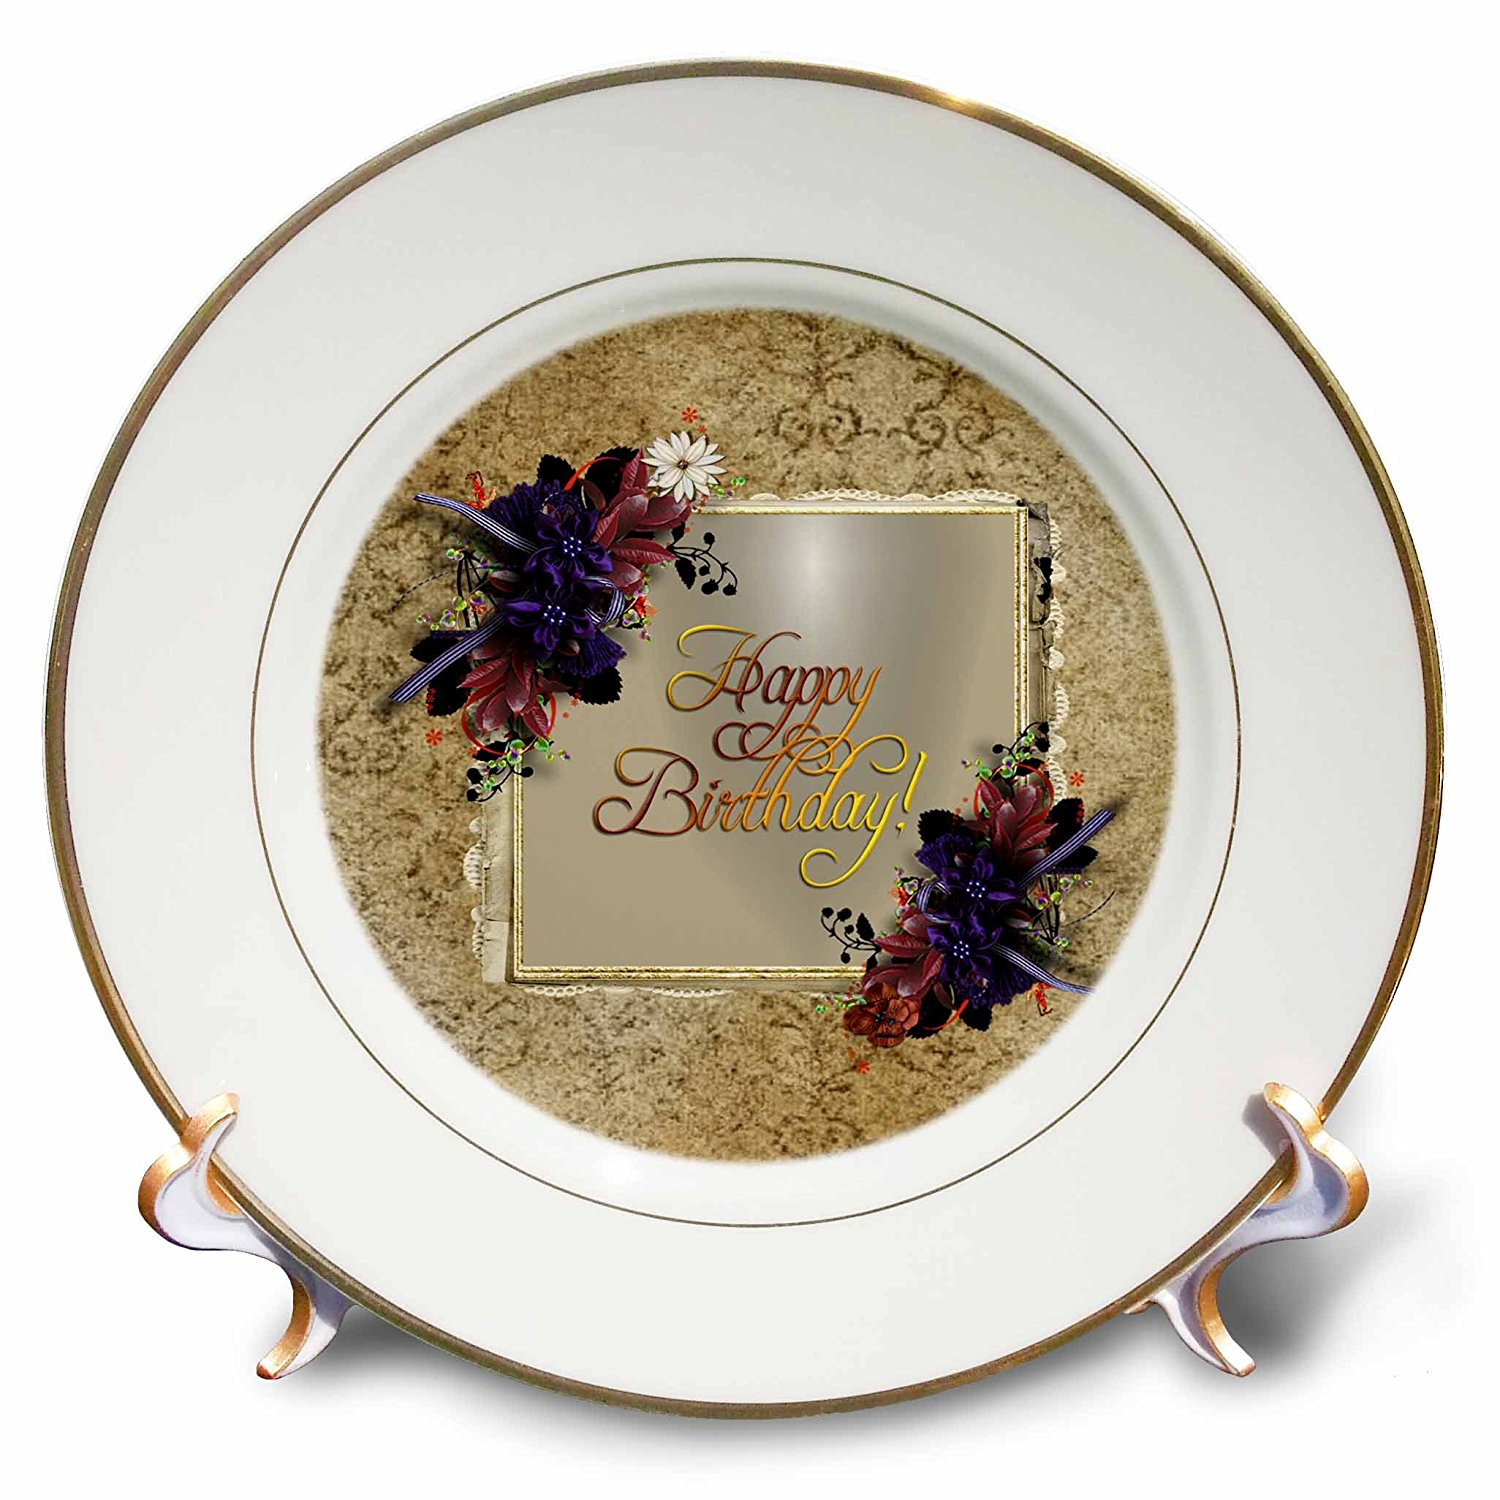 Beverly Turner Birthday Design - Purple Flowers on Gold Frame with Damask Design, Happy Birthday - 8 inch Porcelain Plate (cp_233490_1)